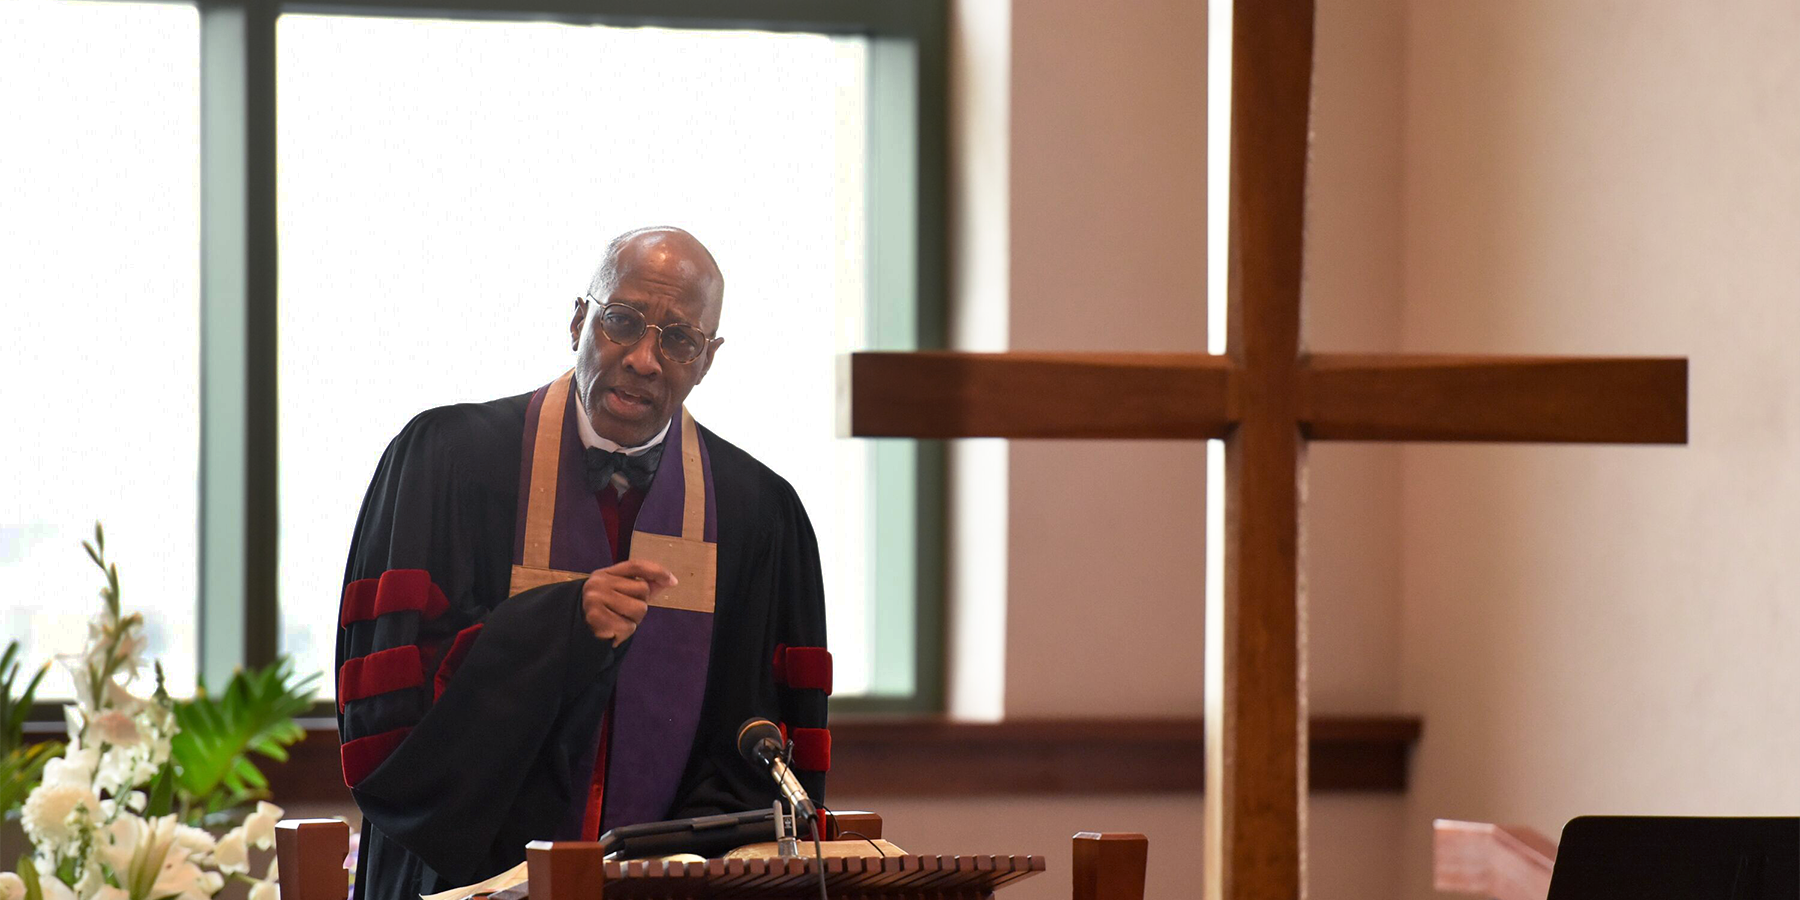 Rev. Dr. J. Herbert Nelson, II, shared his concerns regarding the cash bail system during chapel service at the Presbyterian Center in Louisville. Photo by Rich Copley.